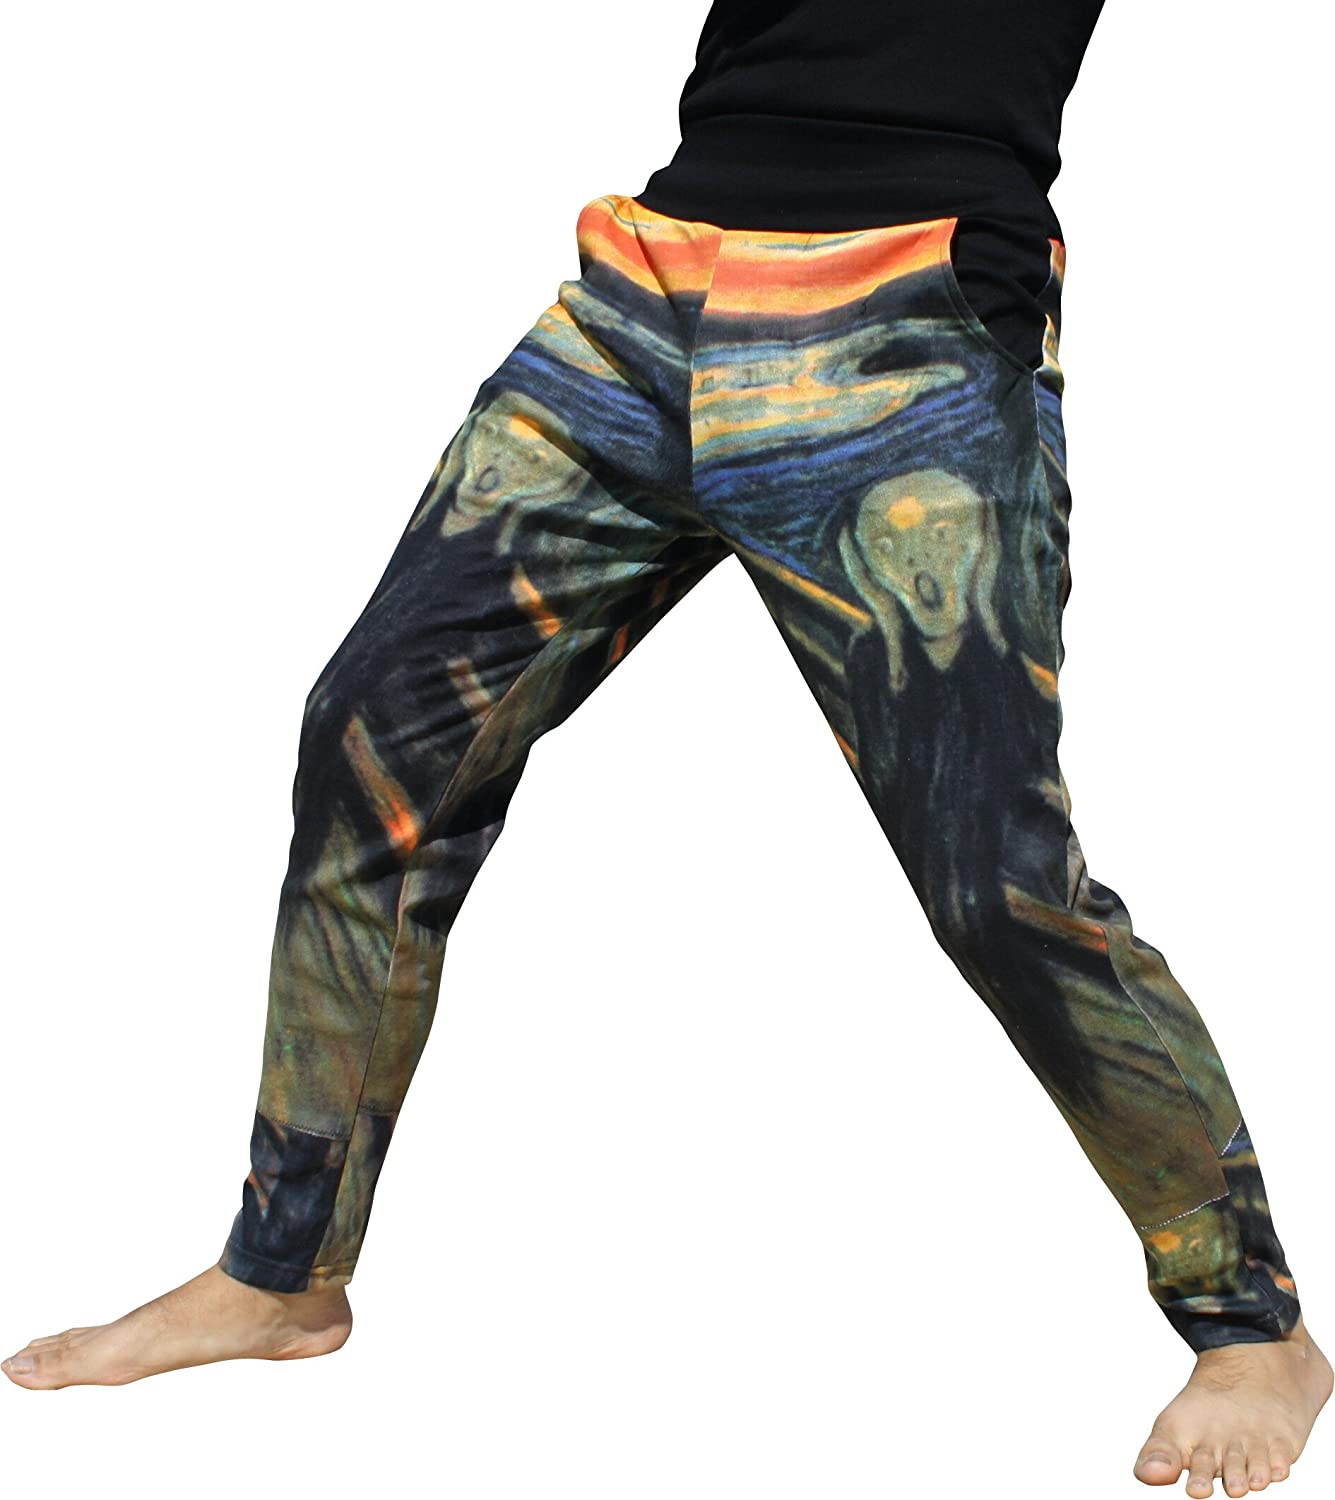 RaanPahMuang Printed Spandex San Diego Mall Pants The - Edward Munch Limited Special Price Scream